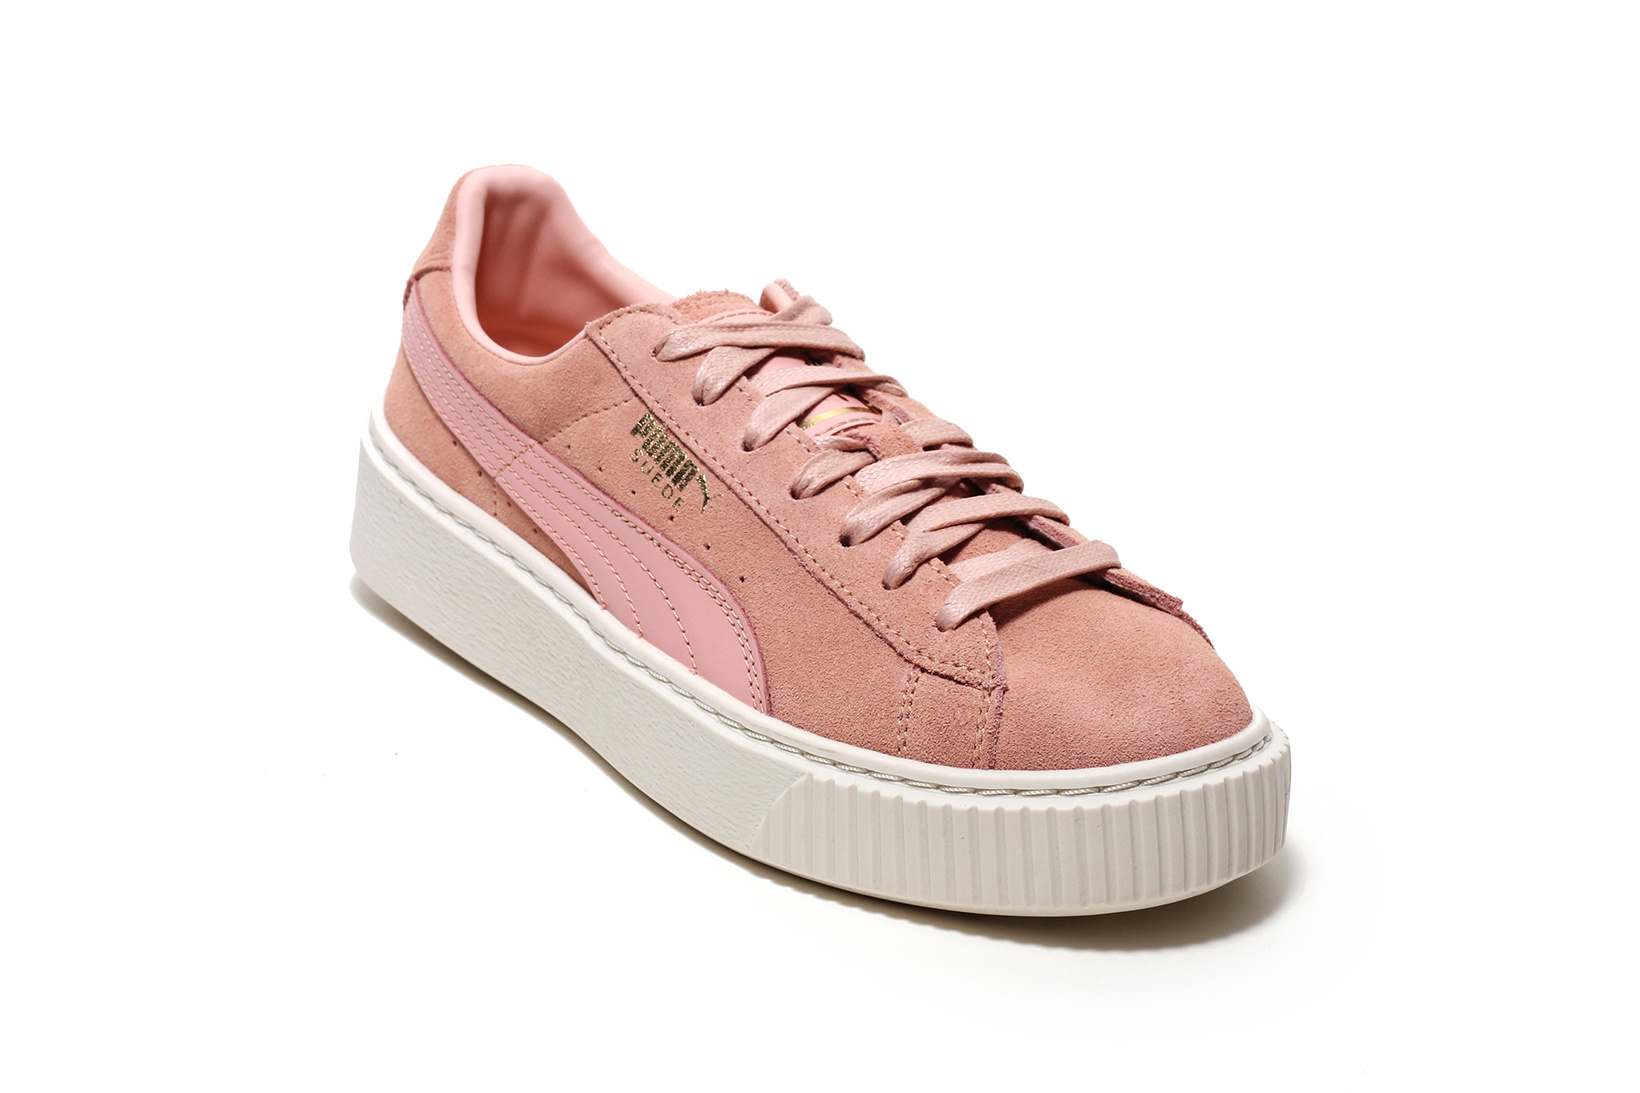 puma releases new suede platform core sneakers trapped. Black Bedroom Furniture Sets. Home Design Ideas